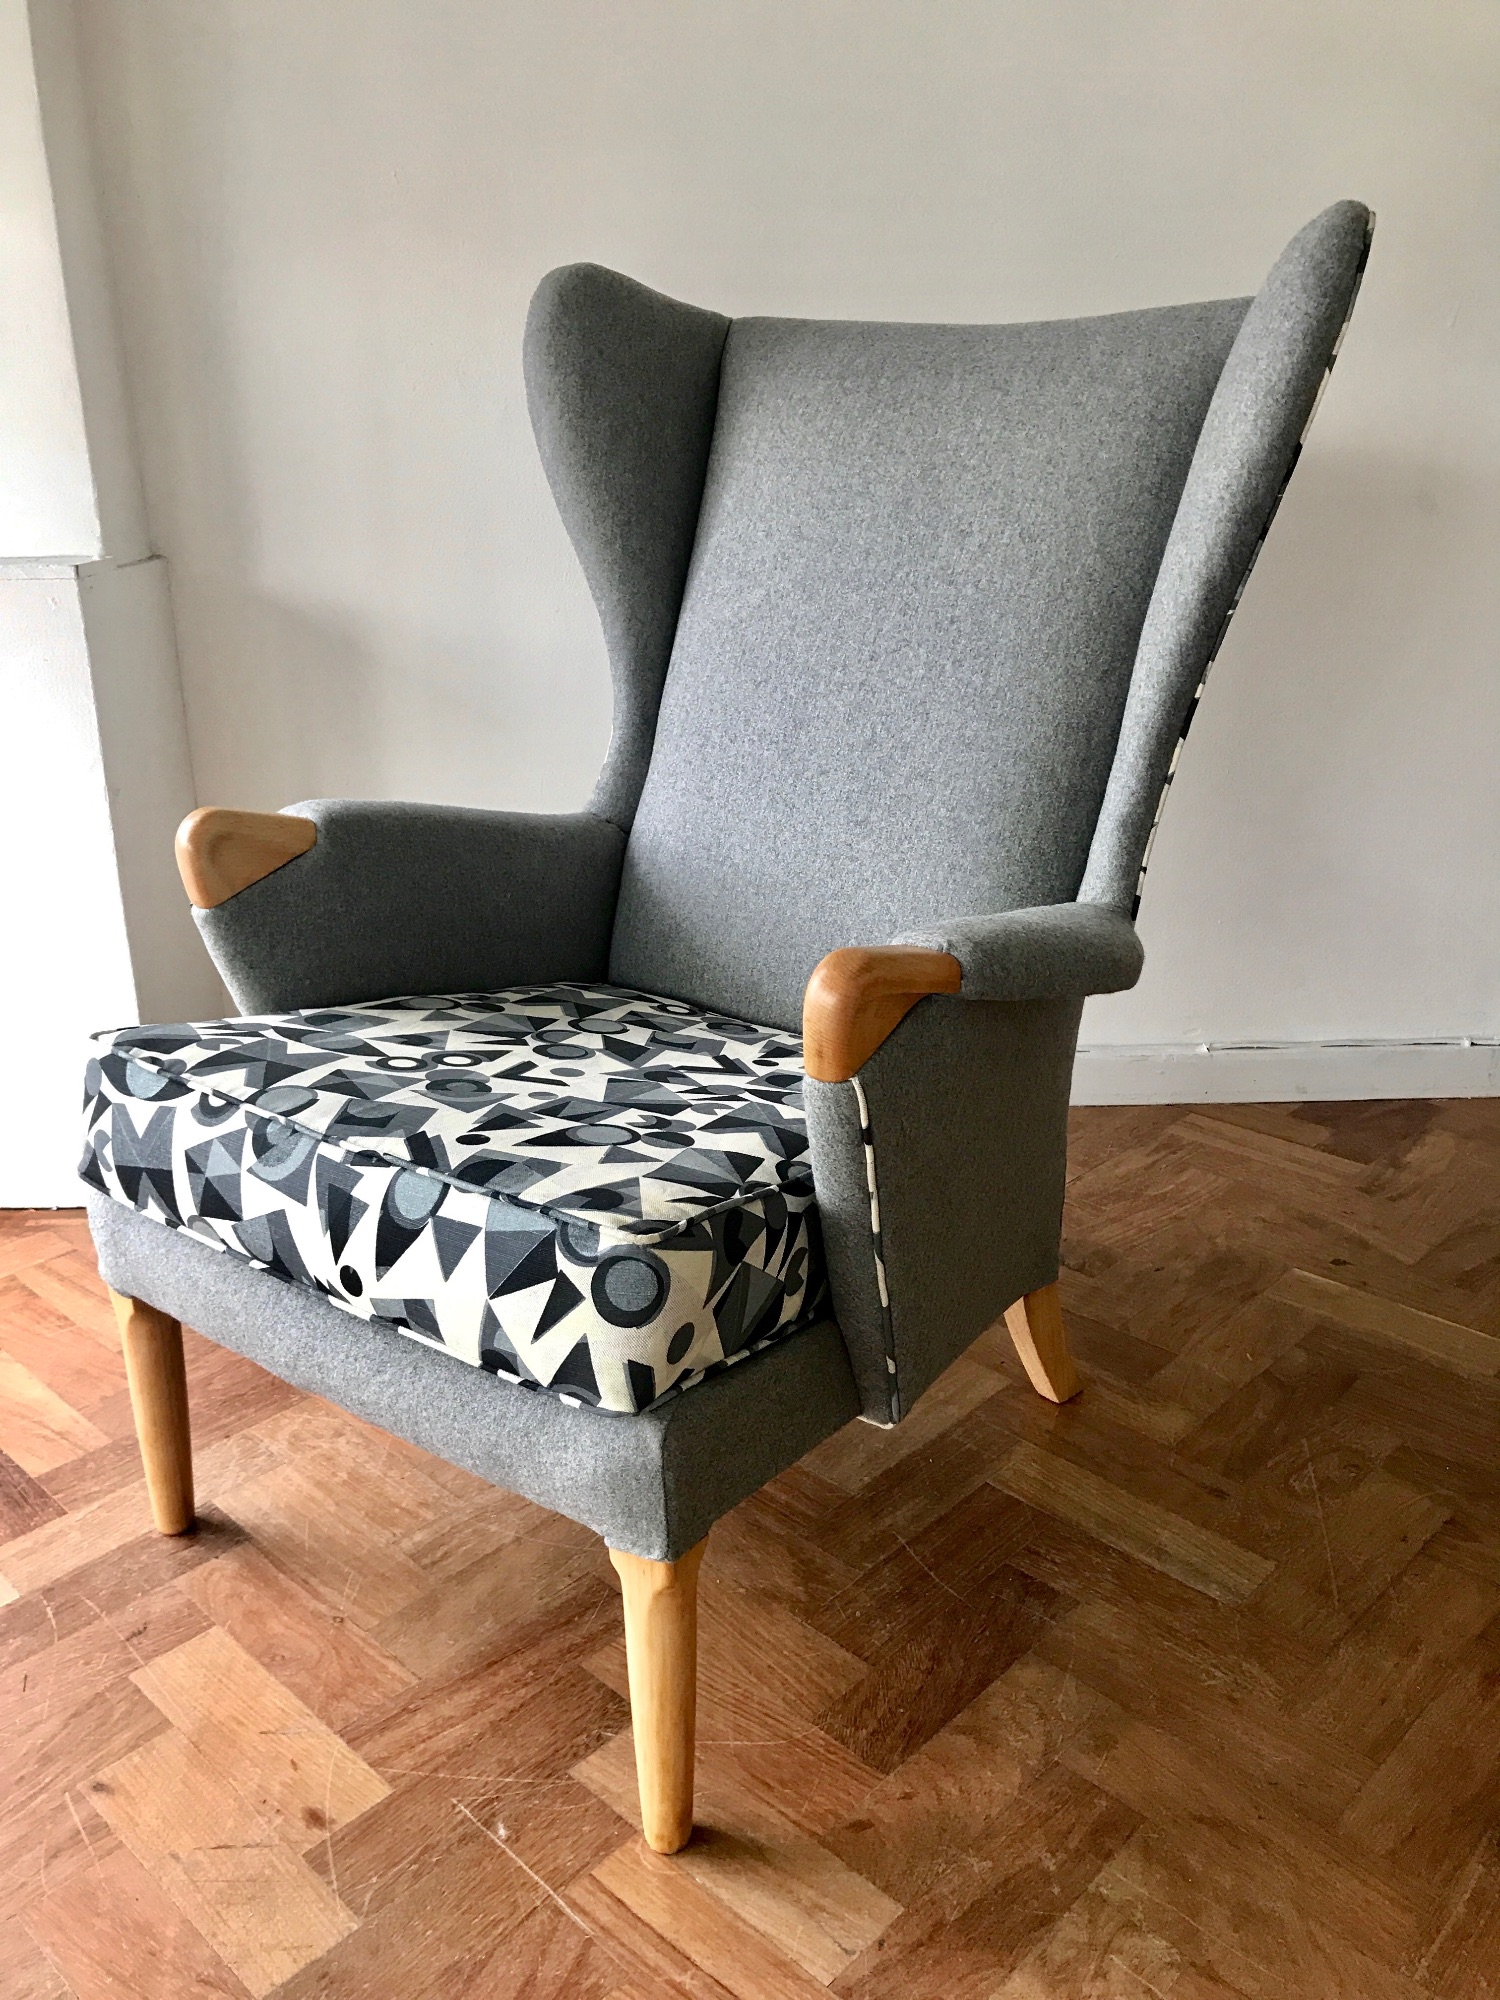 Vintage Parker Knoll 'papa bear' winged armchair by Spring Upholstery Brighton in grey wool felt and Colourdrome fabric desinged by Peter Green and produced by  St Jude's Fabrics